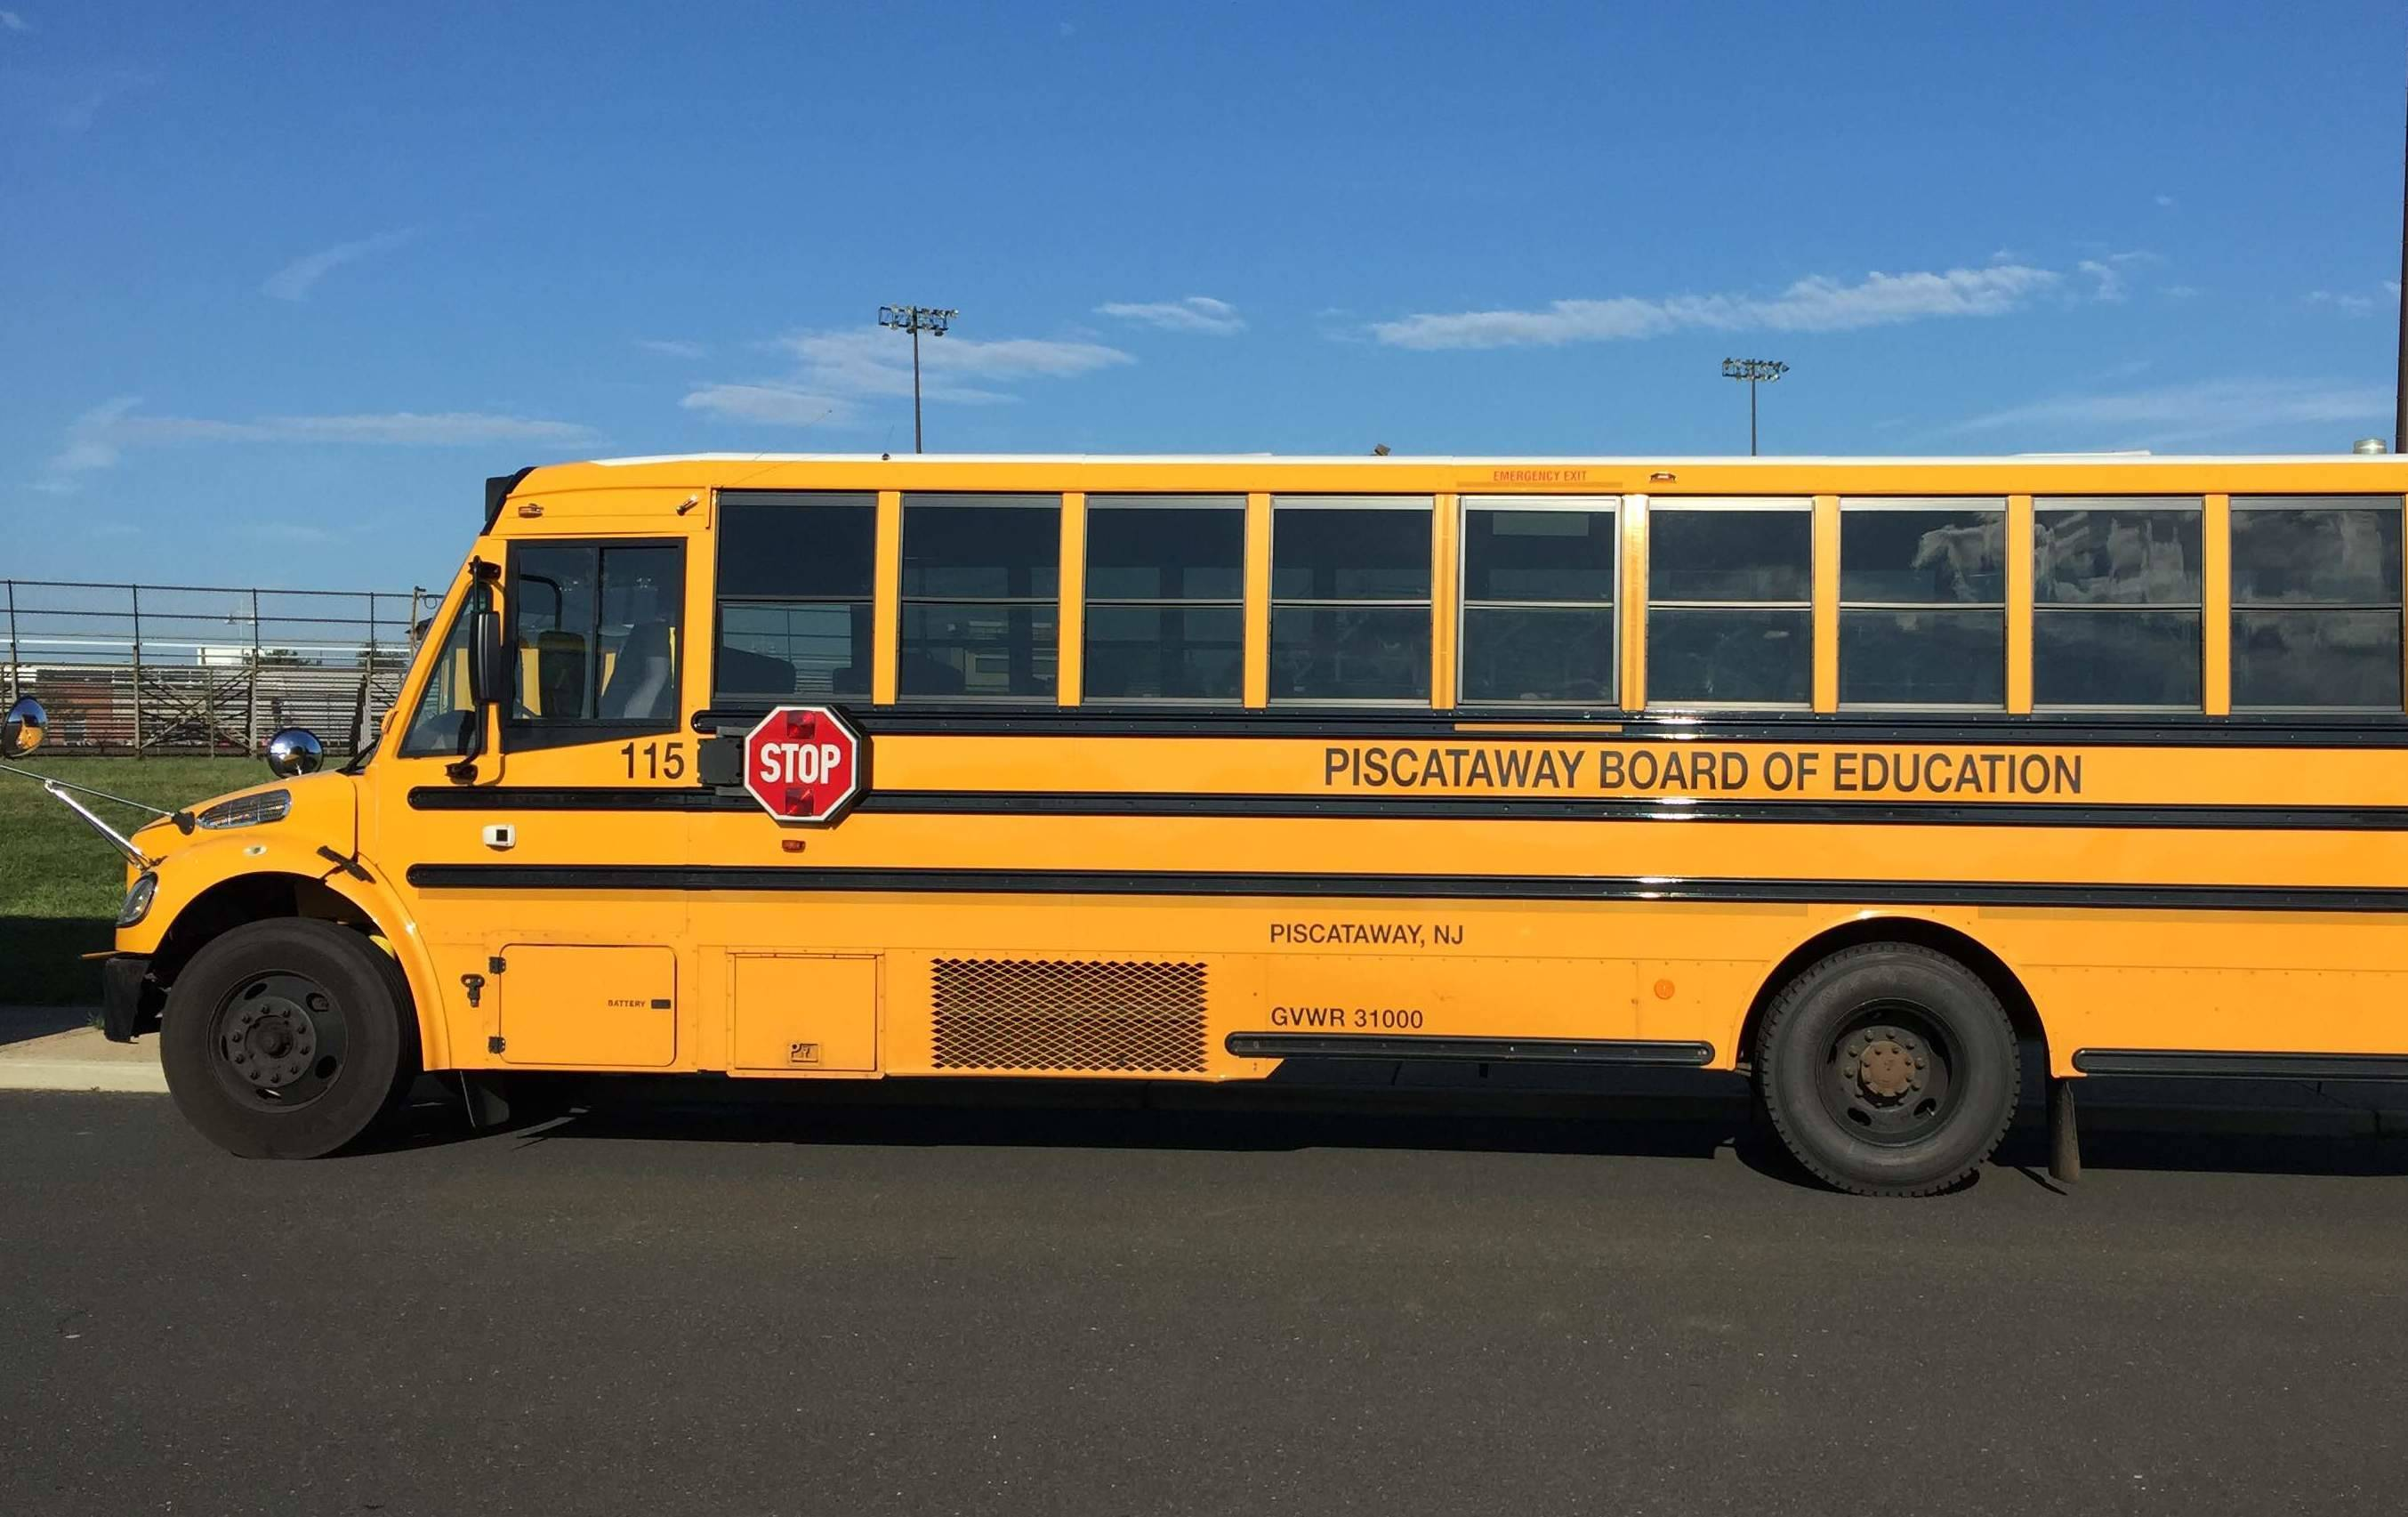 a62c8b6a357be88c719b_School_Bus_credit_Ken_Simmons_cropped.jpg